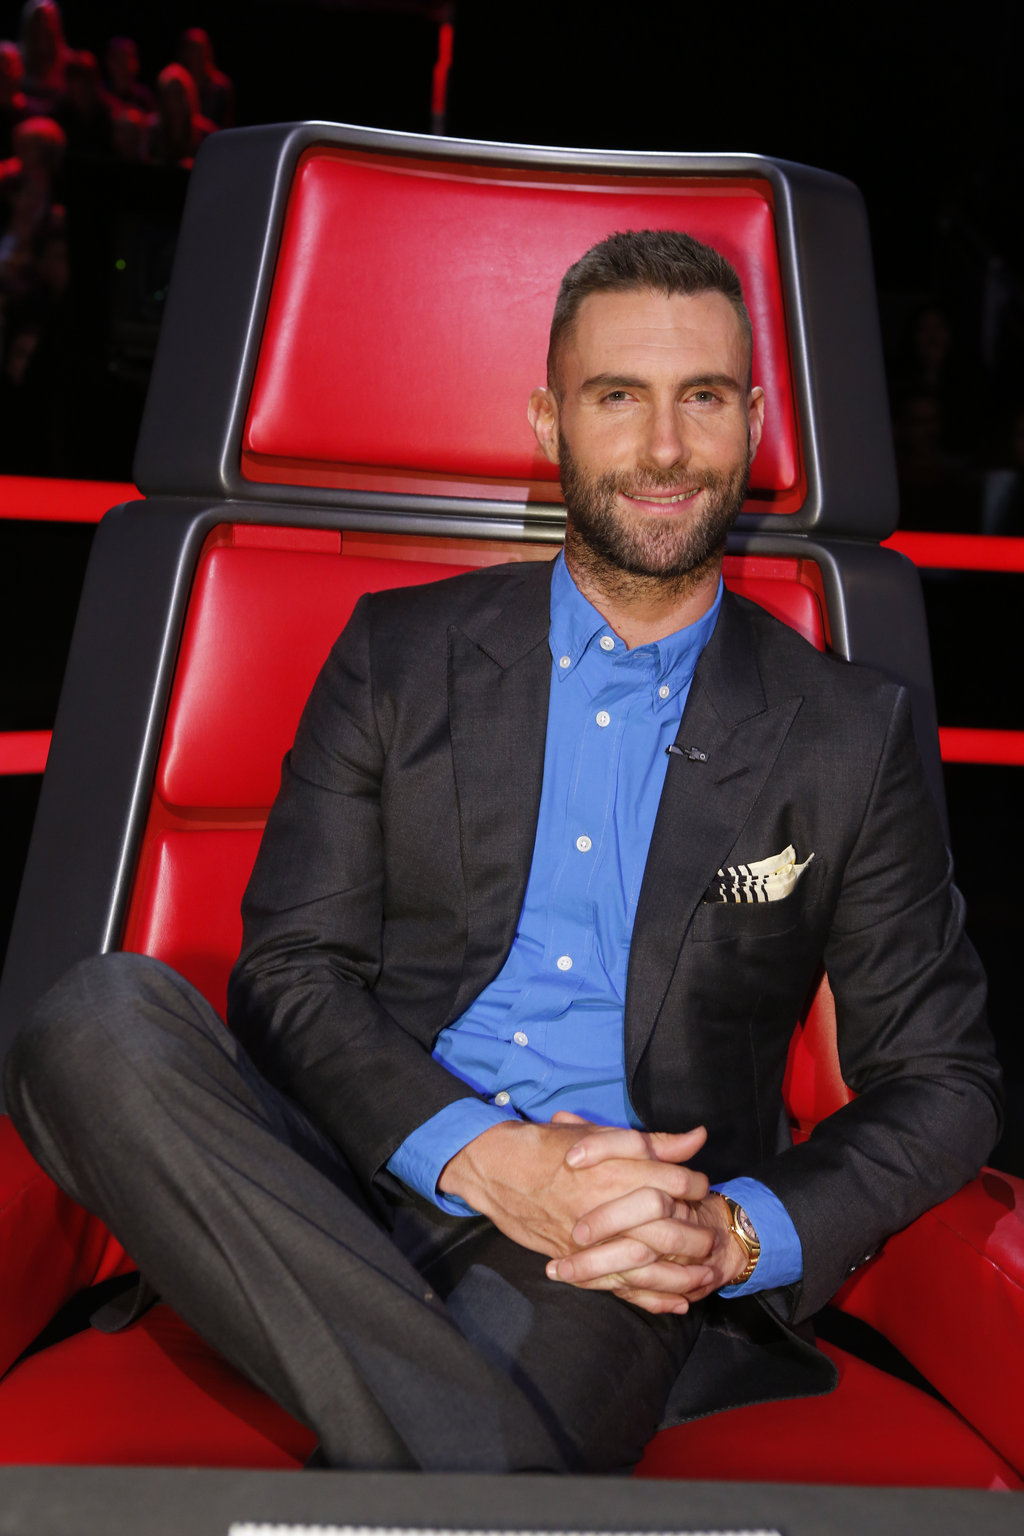 Adam-Levine-The-Voice-Haircut-2015-Picture